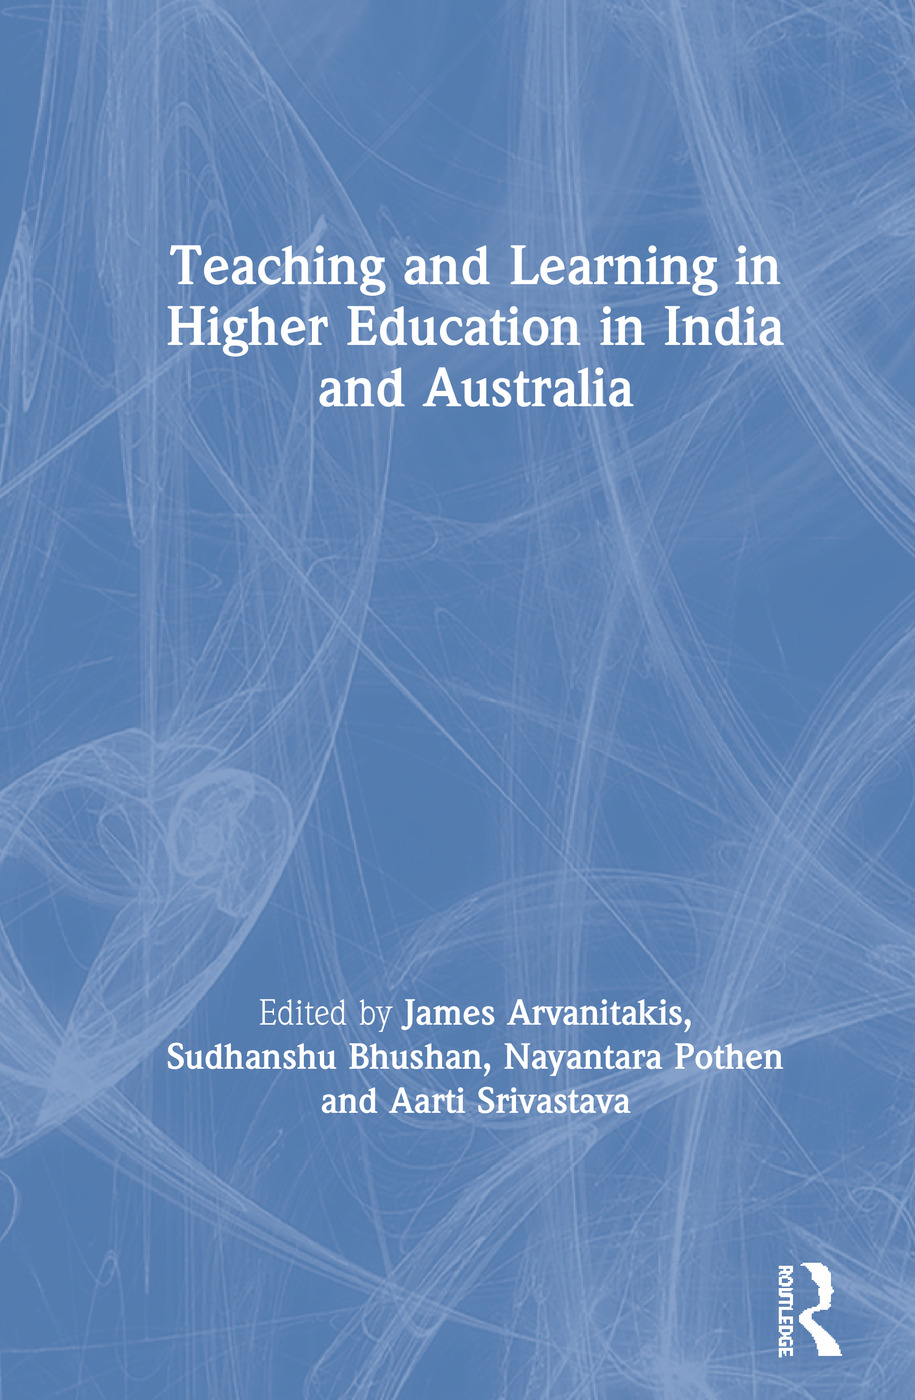 Teaching and Learning in Higher Education in India and Australia book cover